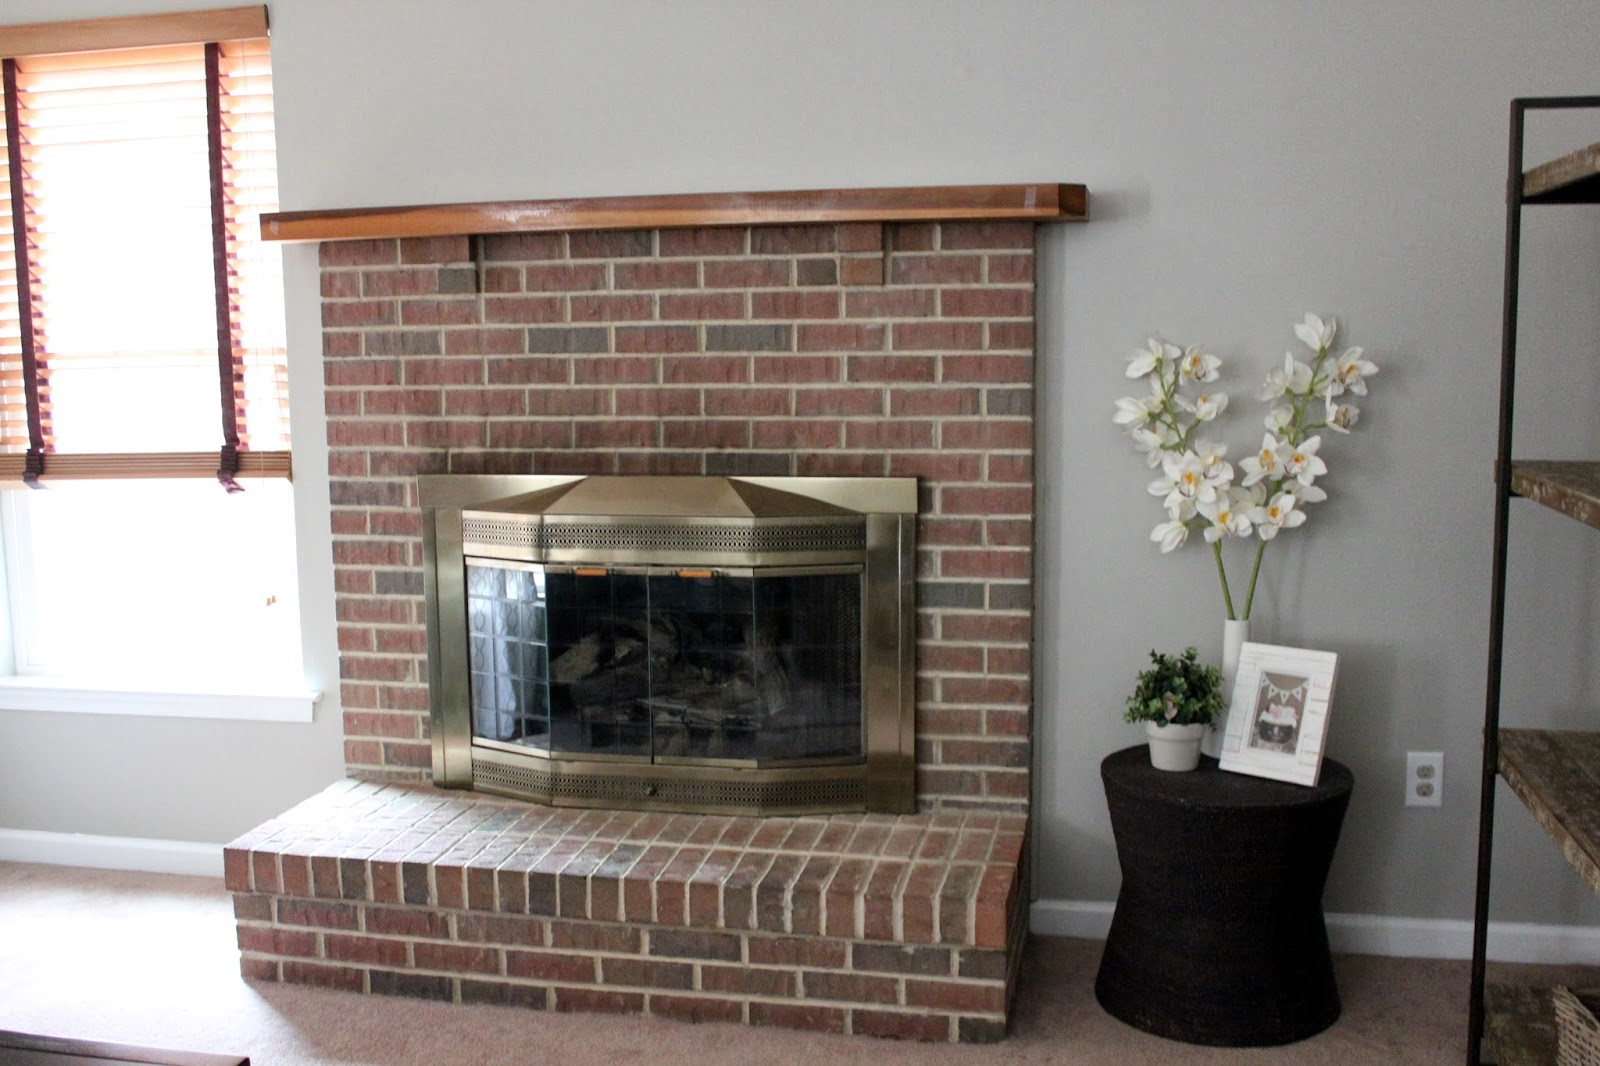 Paint Colors That Go With Red Brick Fireplace Living Room Colors That Match Red Brick Modern Home